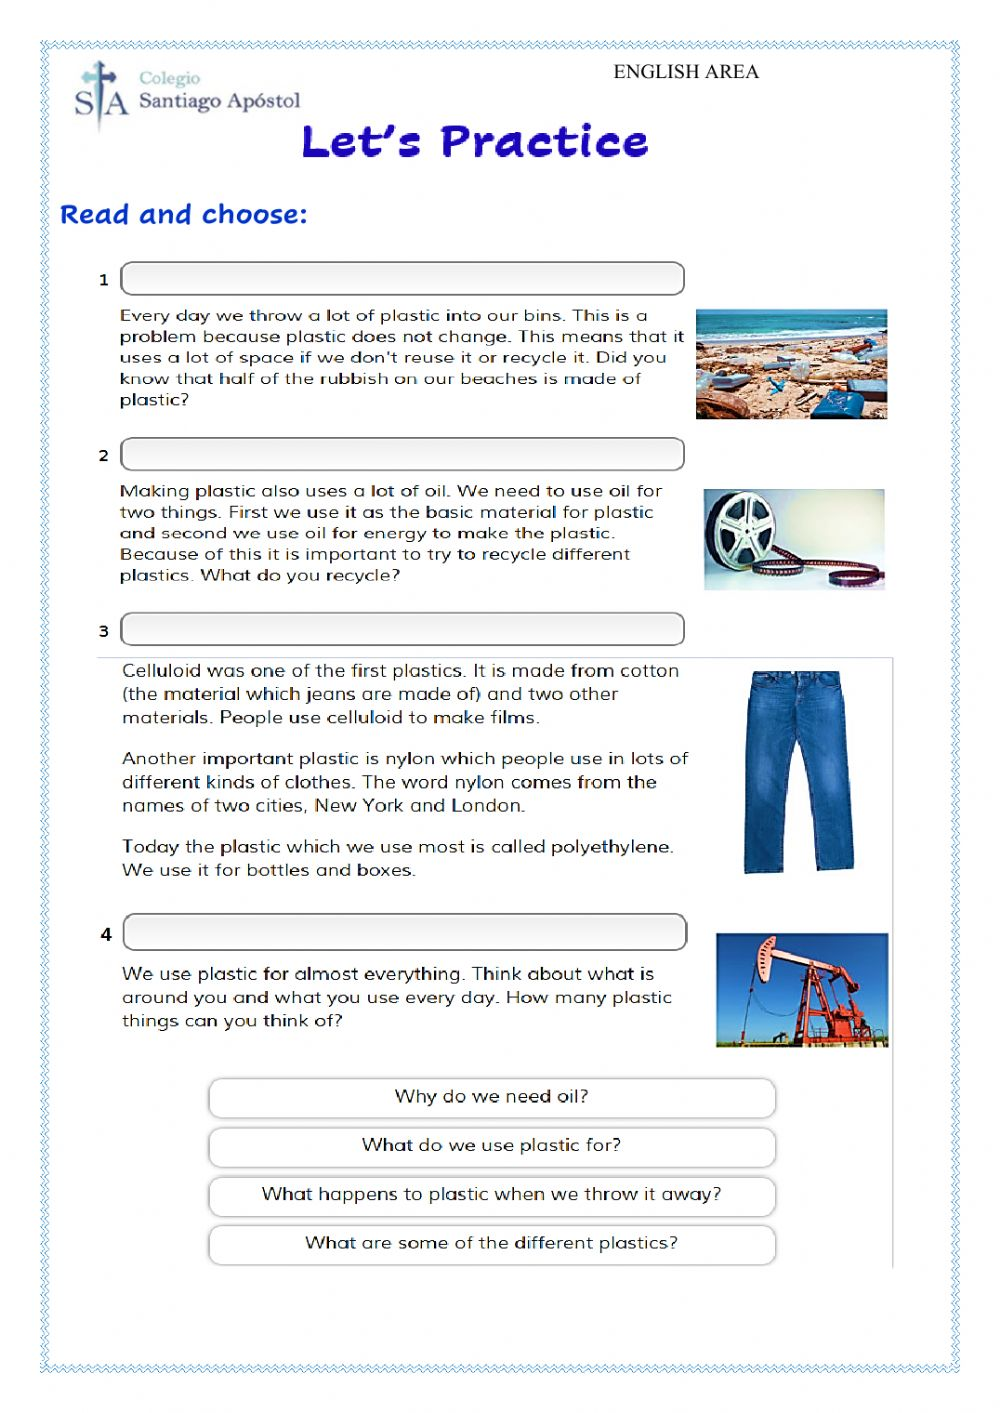 medium resolution of Reading Comprehension online exercise for Grade 5